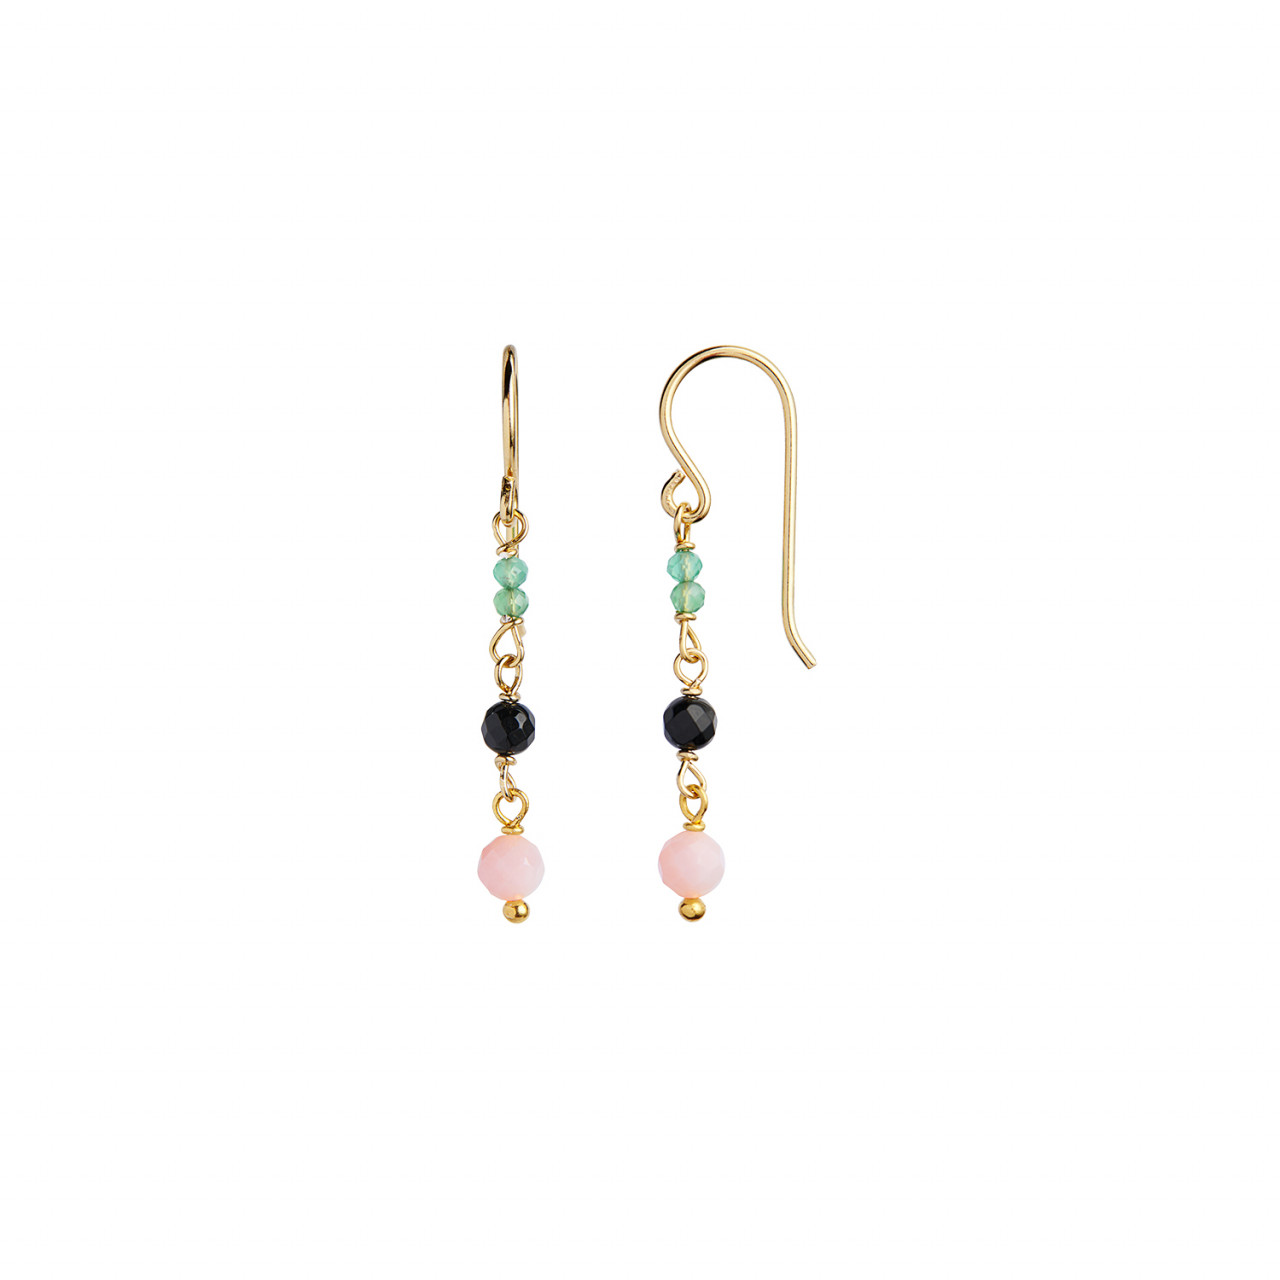 Petit Stone Earring on Hook - Green Forrest